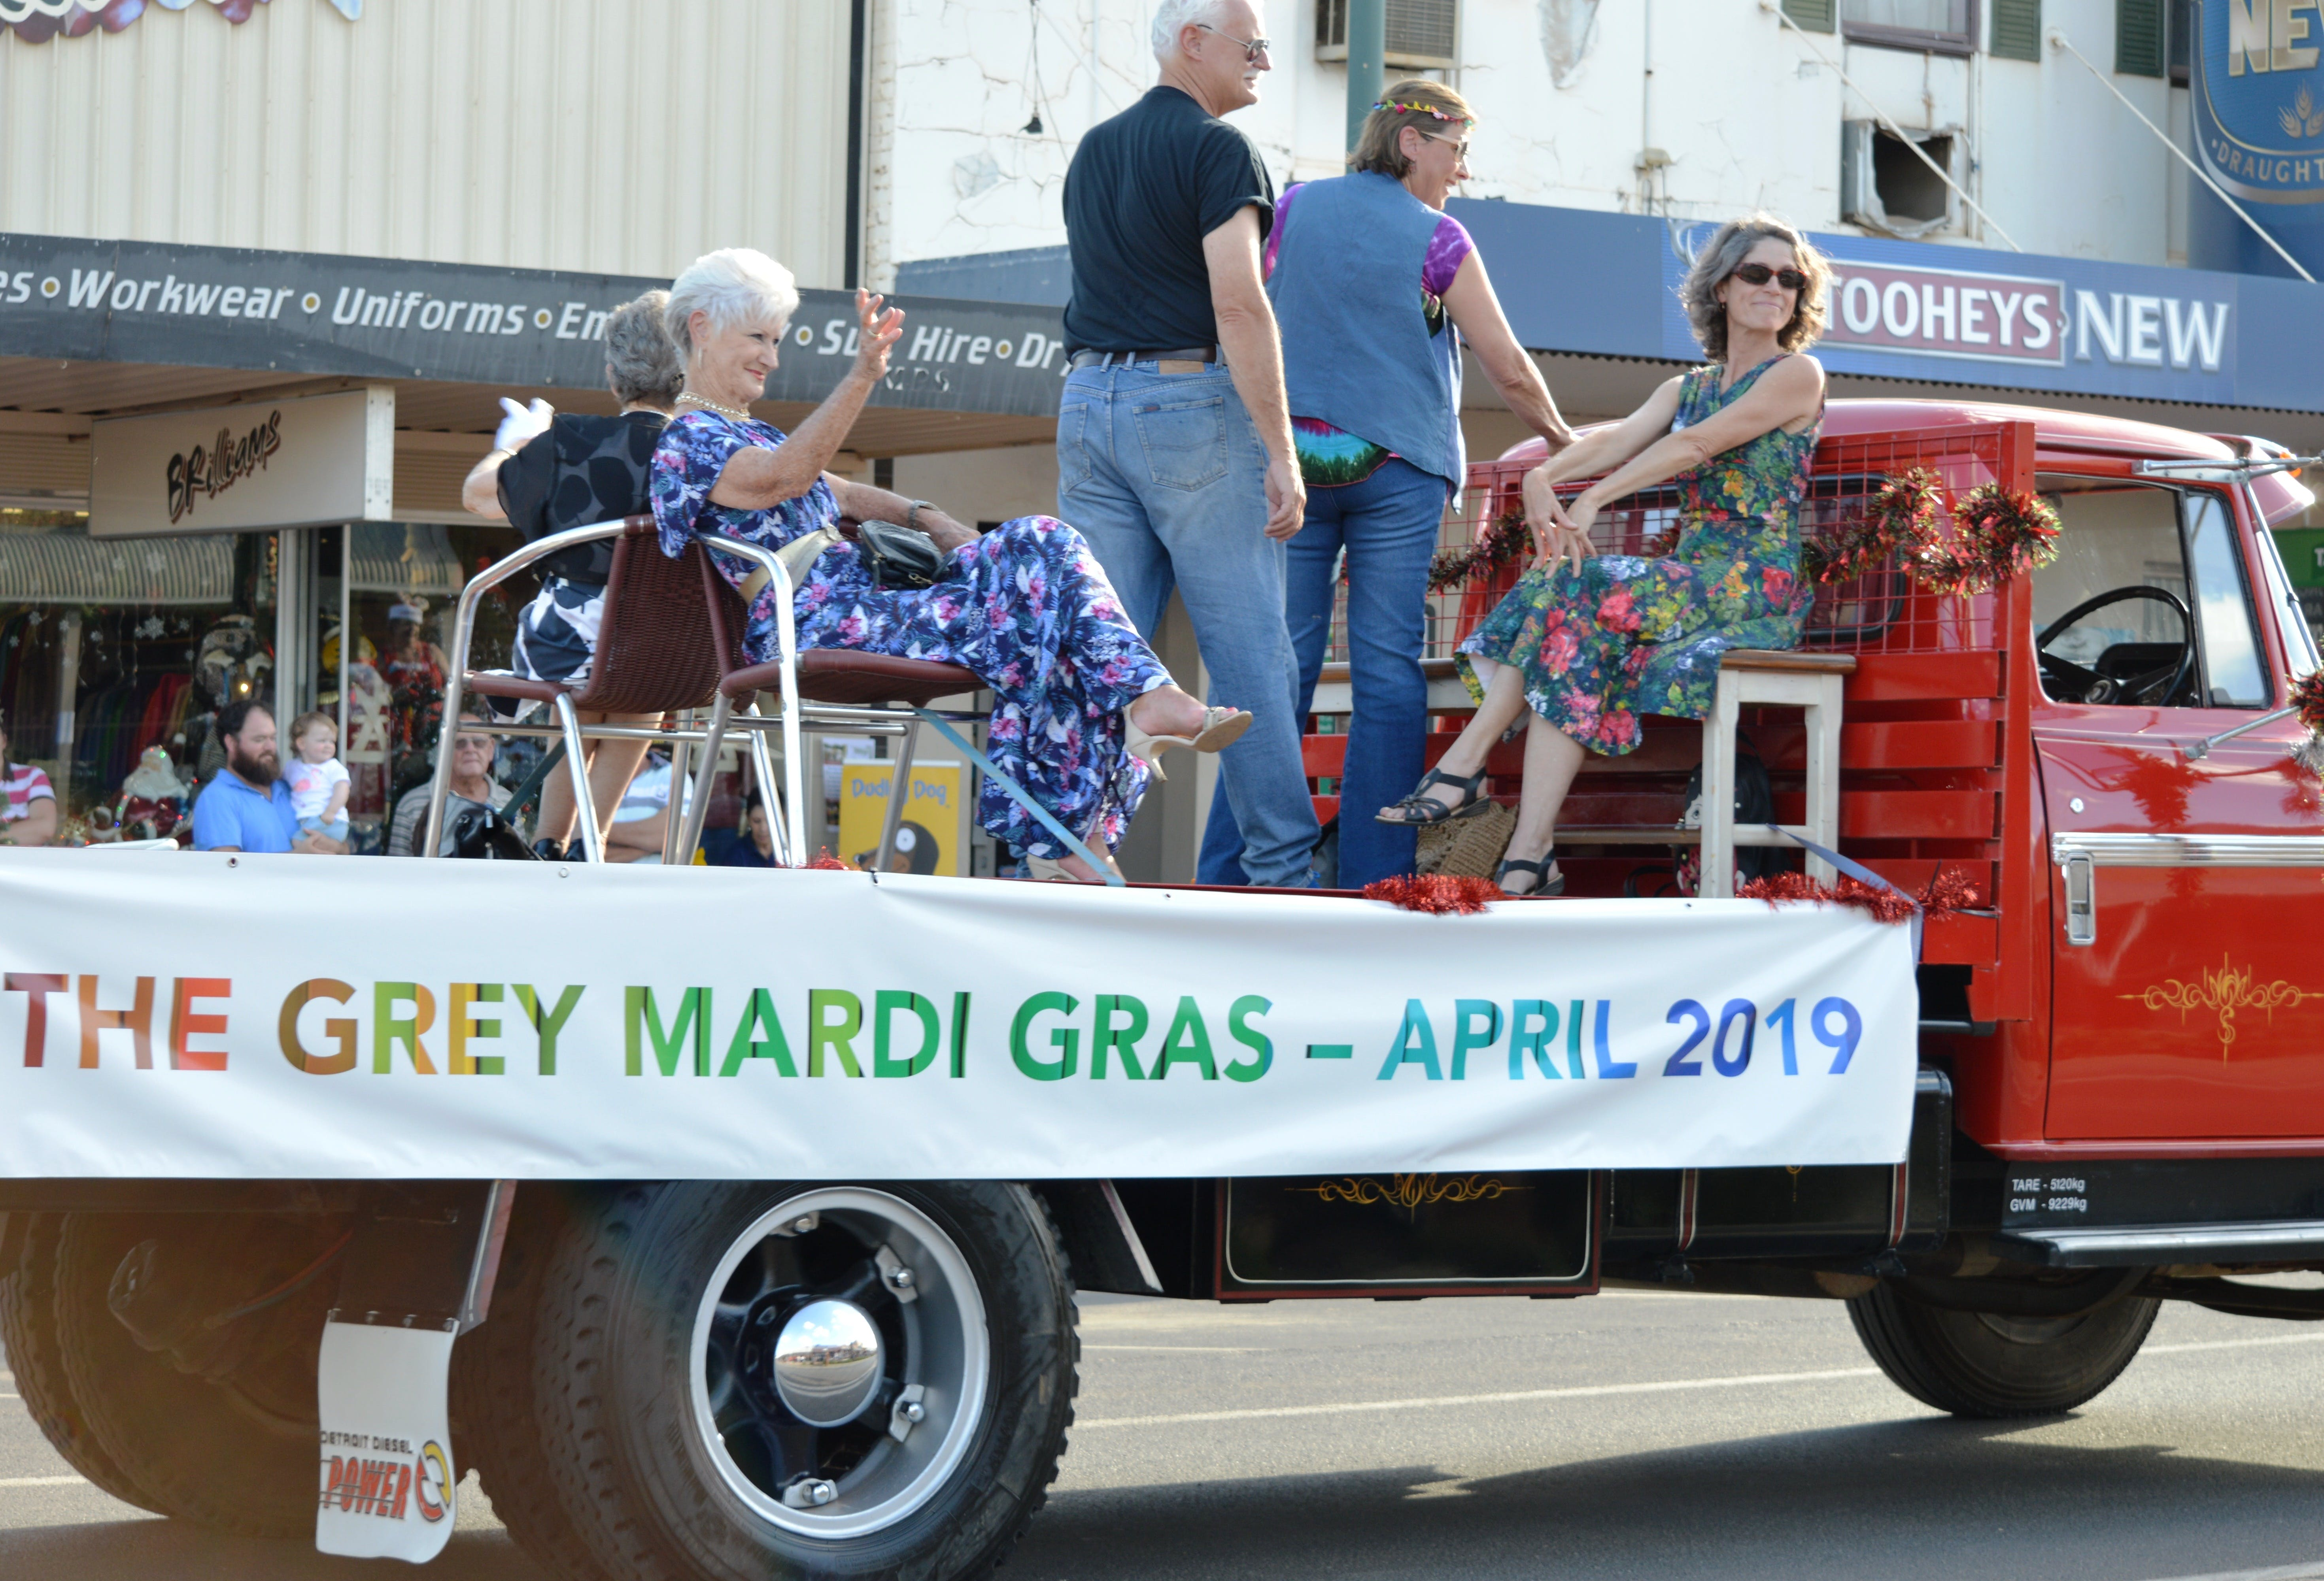 The Grey Mardi Gras - Tourism Canberra